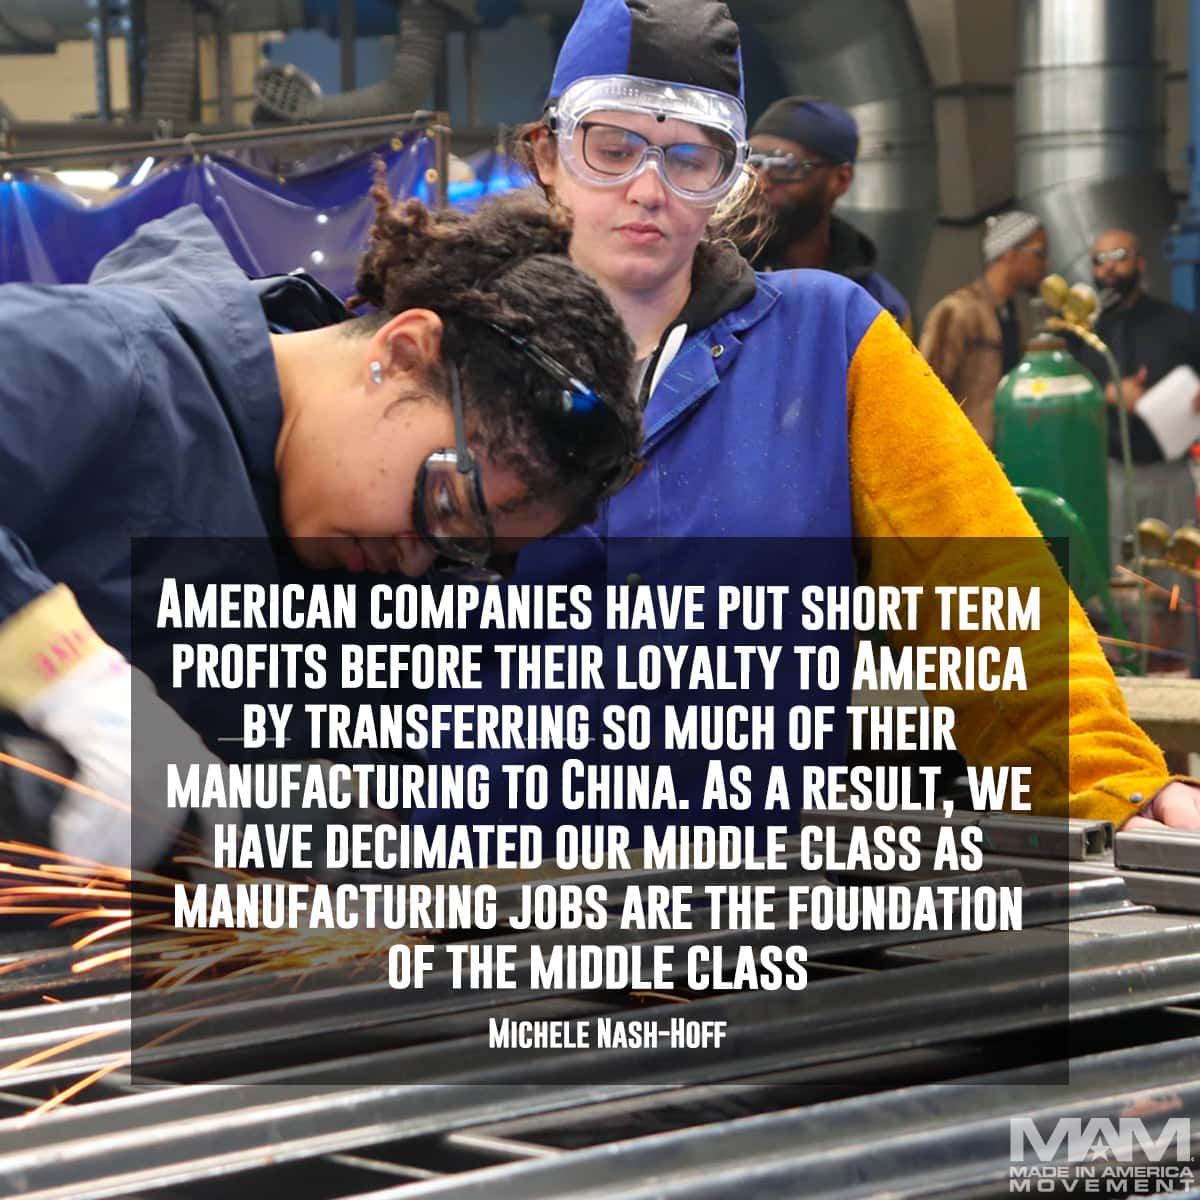 American companies have put short term profits before their loyalty to America by transferring so much of their manufacturing to China. As a result, we have decimated our middle class as manufacturing jobs are the foundation of the middle class. - Michele Nash-Hoff